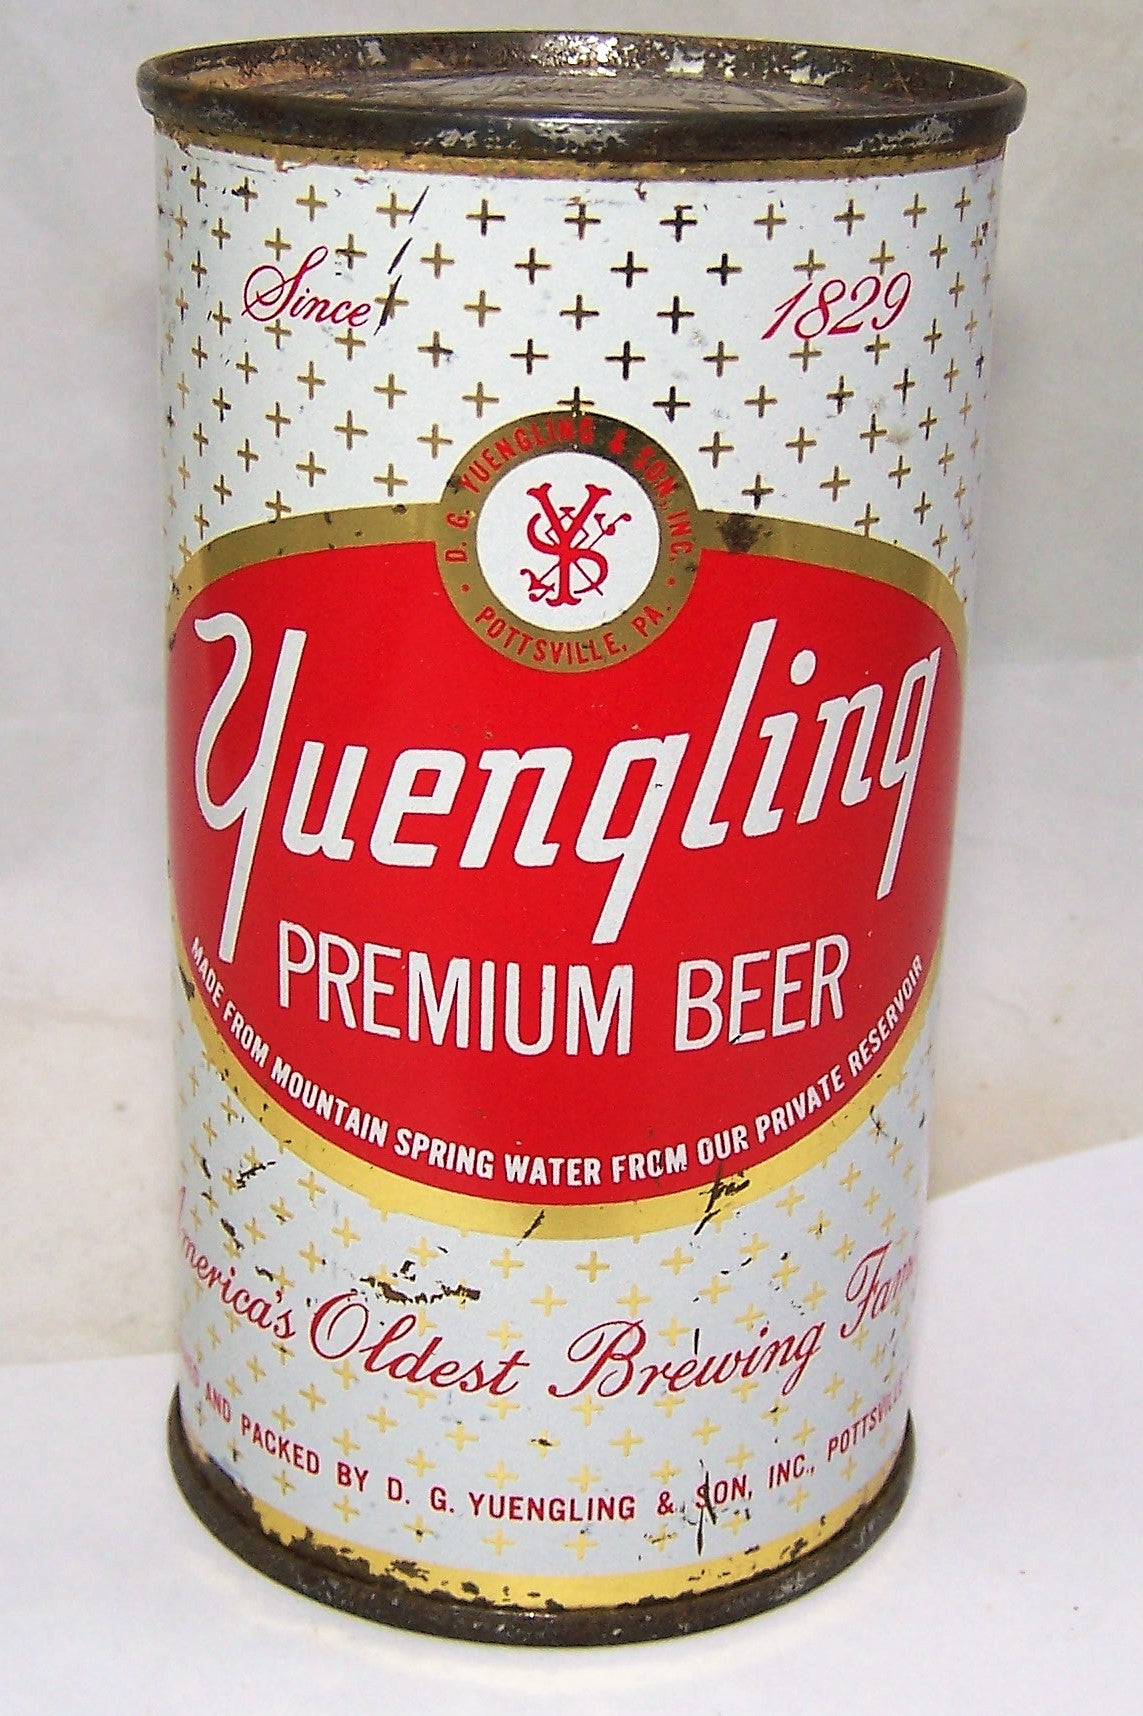 Yuengling Premium Beer, USBC 147-07, Grade 1- Sold on 11/12/19